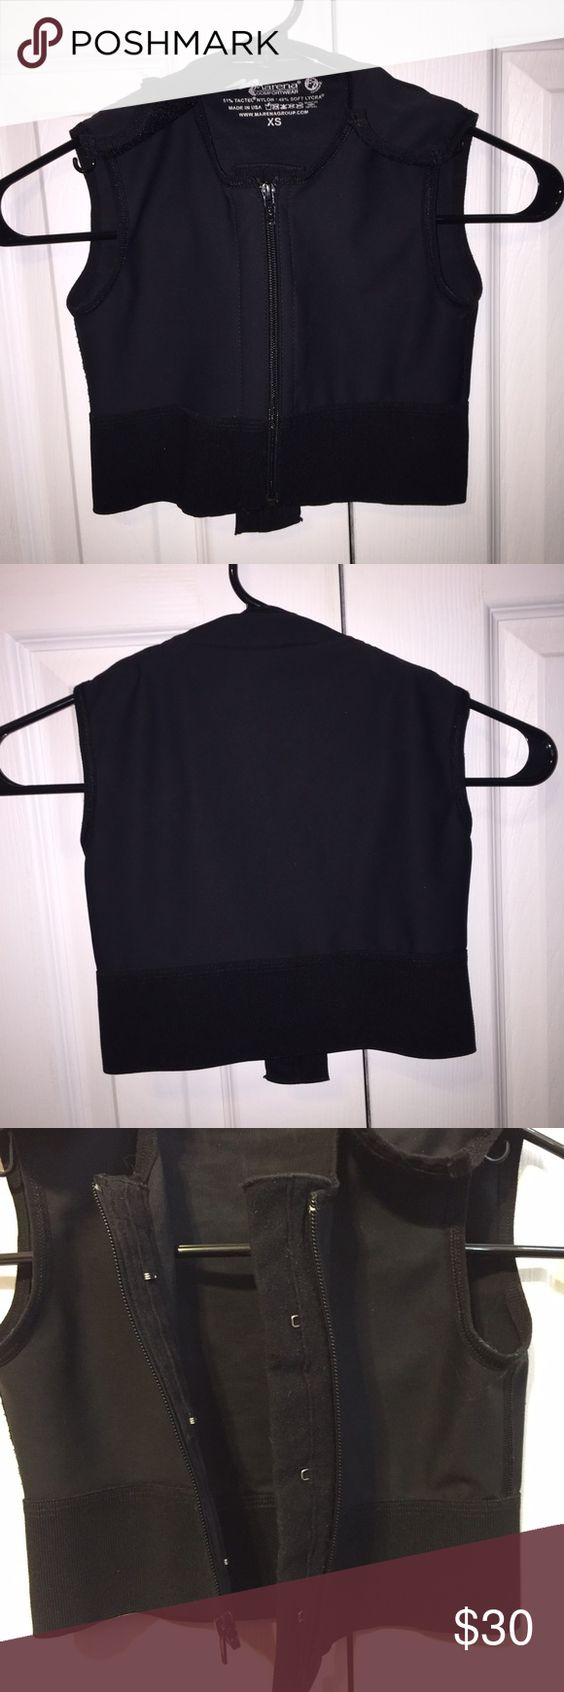 how to make a binder out of a sports bra